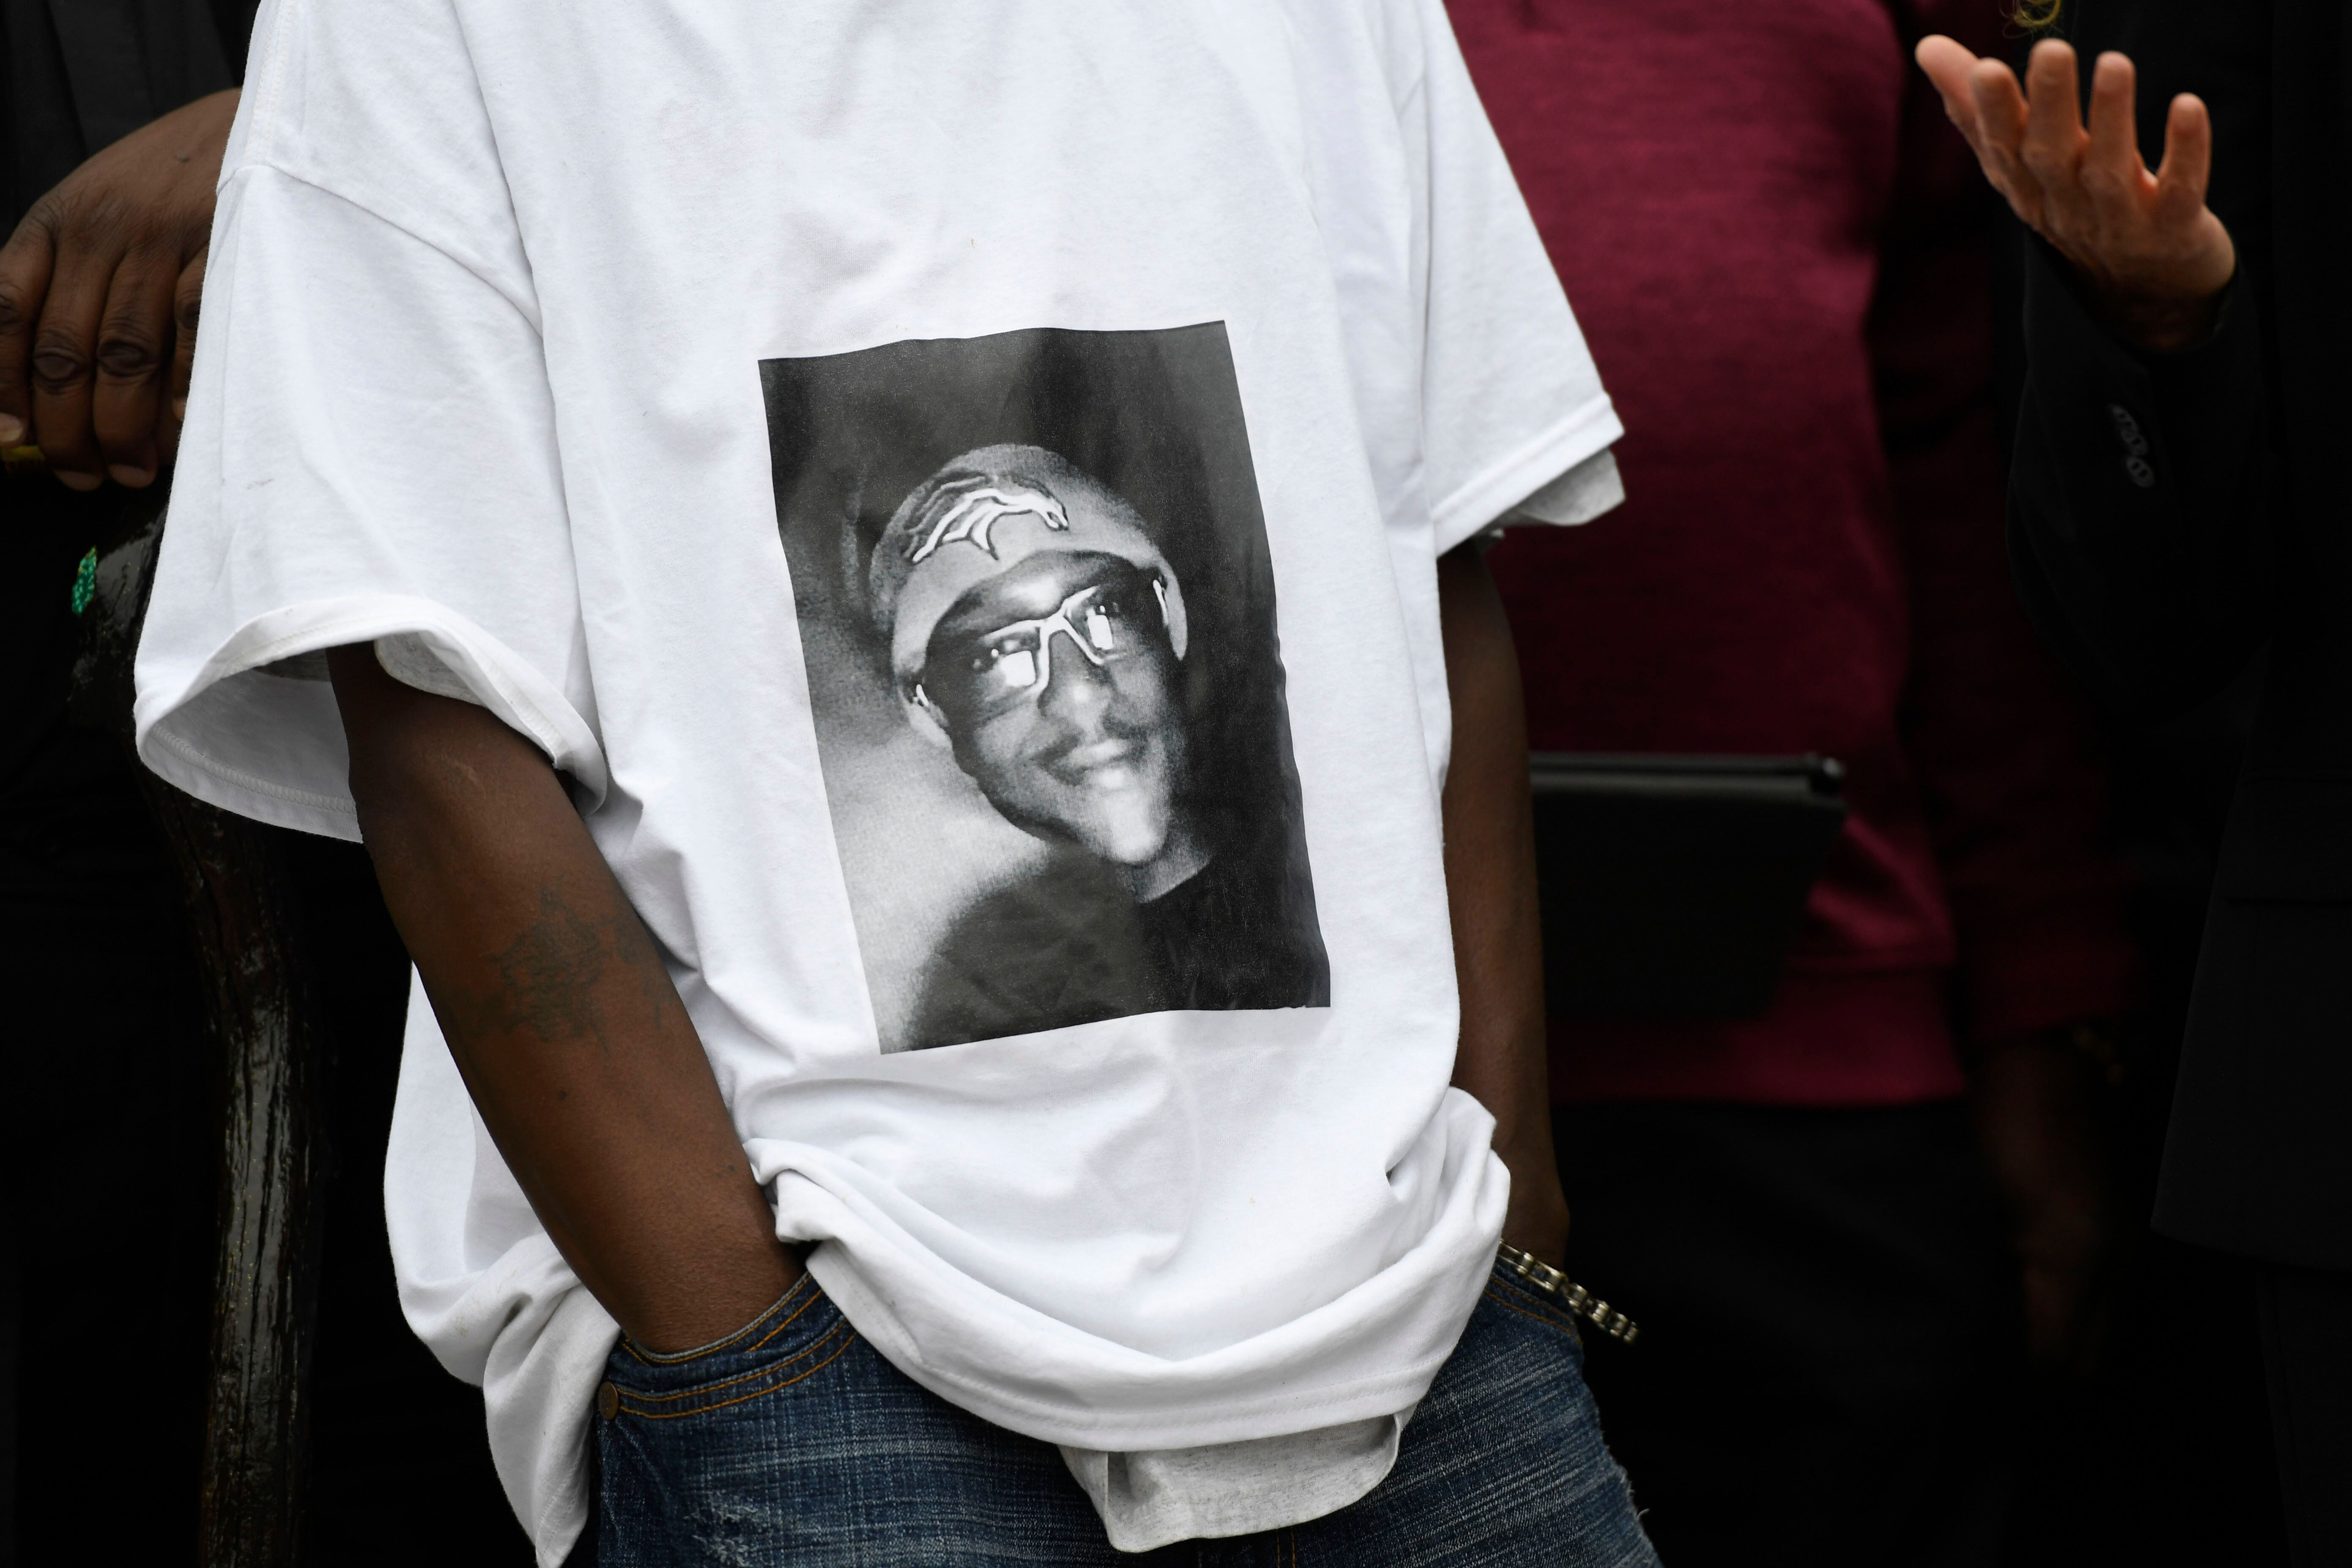 LaWayne Mosley, father of Elijah McClain, wears a T-shirt with is son's picture on it during a press conference in front of t